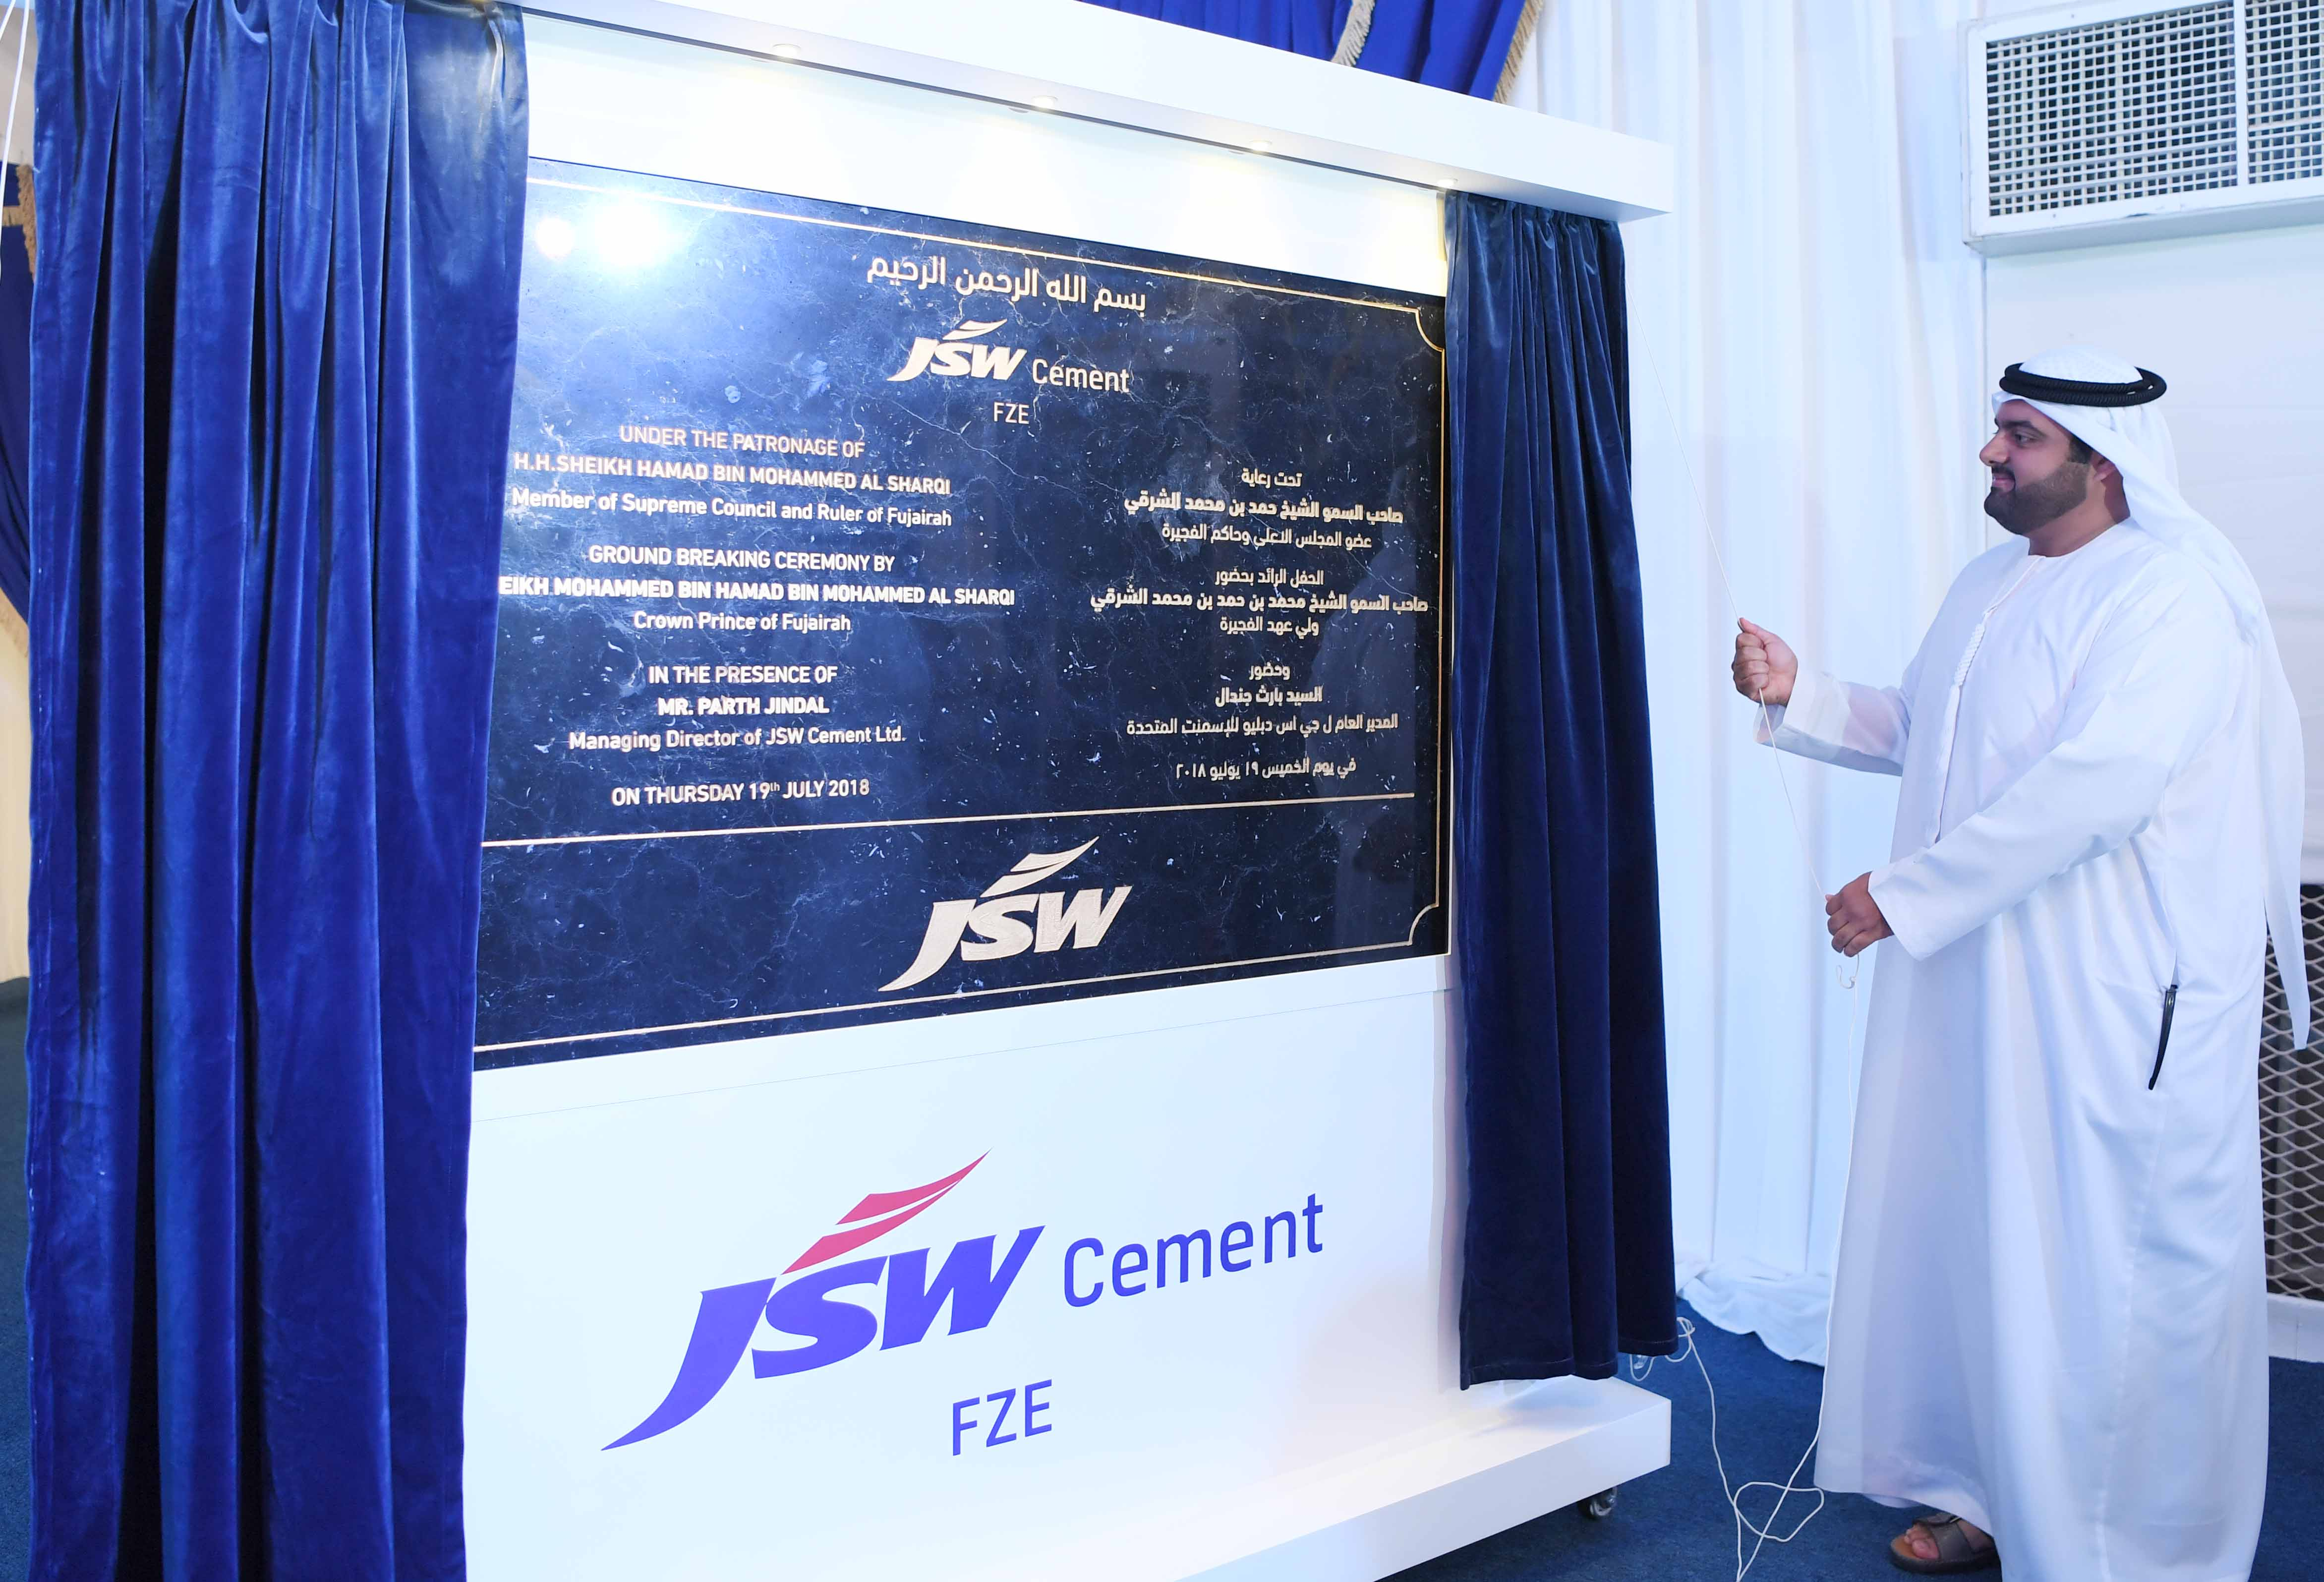 Clinkers Cement Can Be Dissolved : وكالة أنباء الإمارات fujairahs cp launches jsw factory for